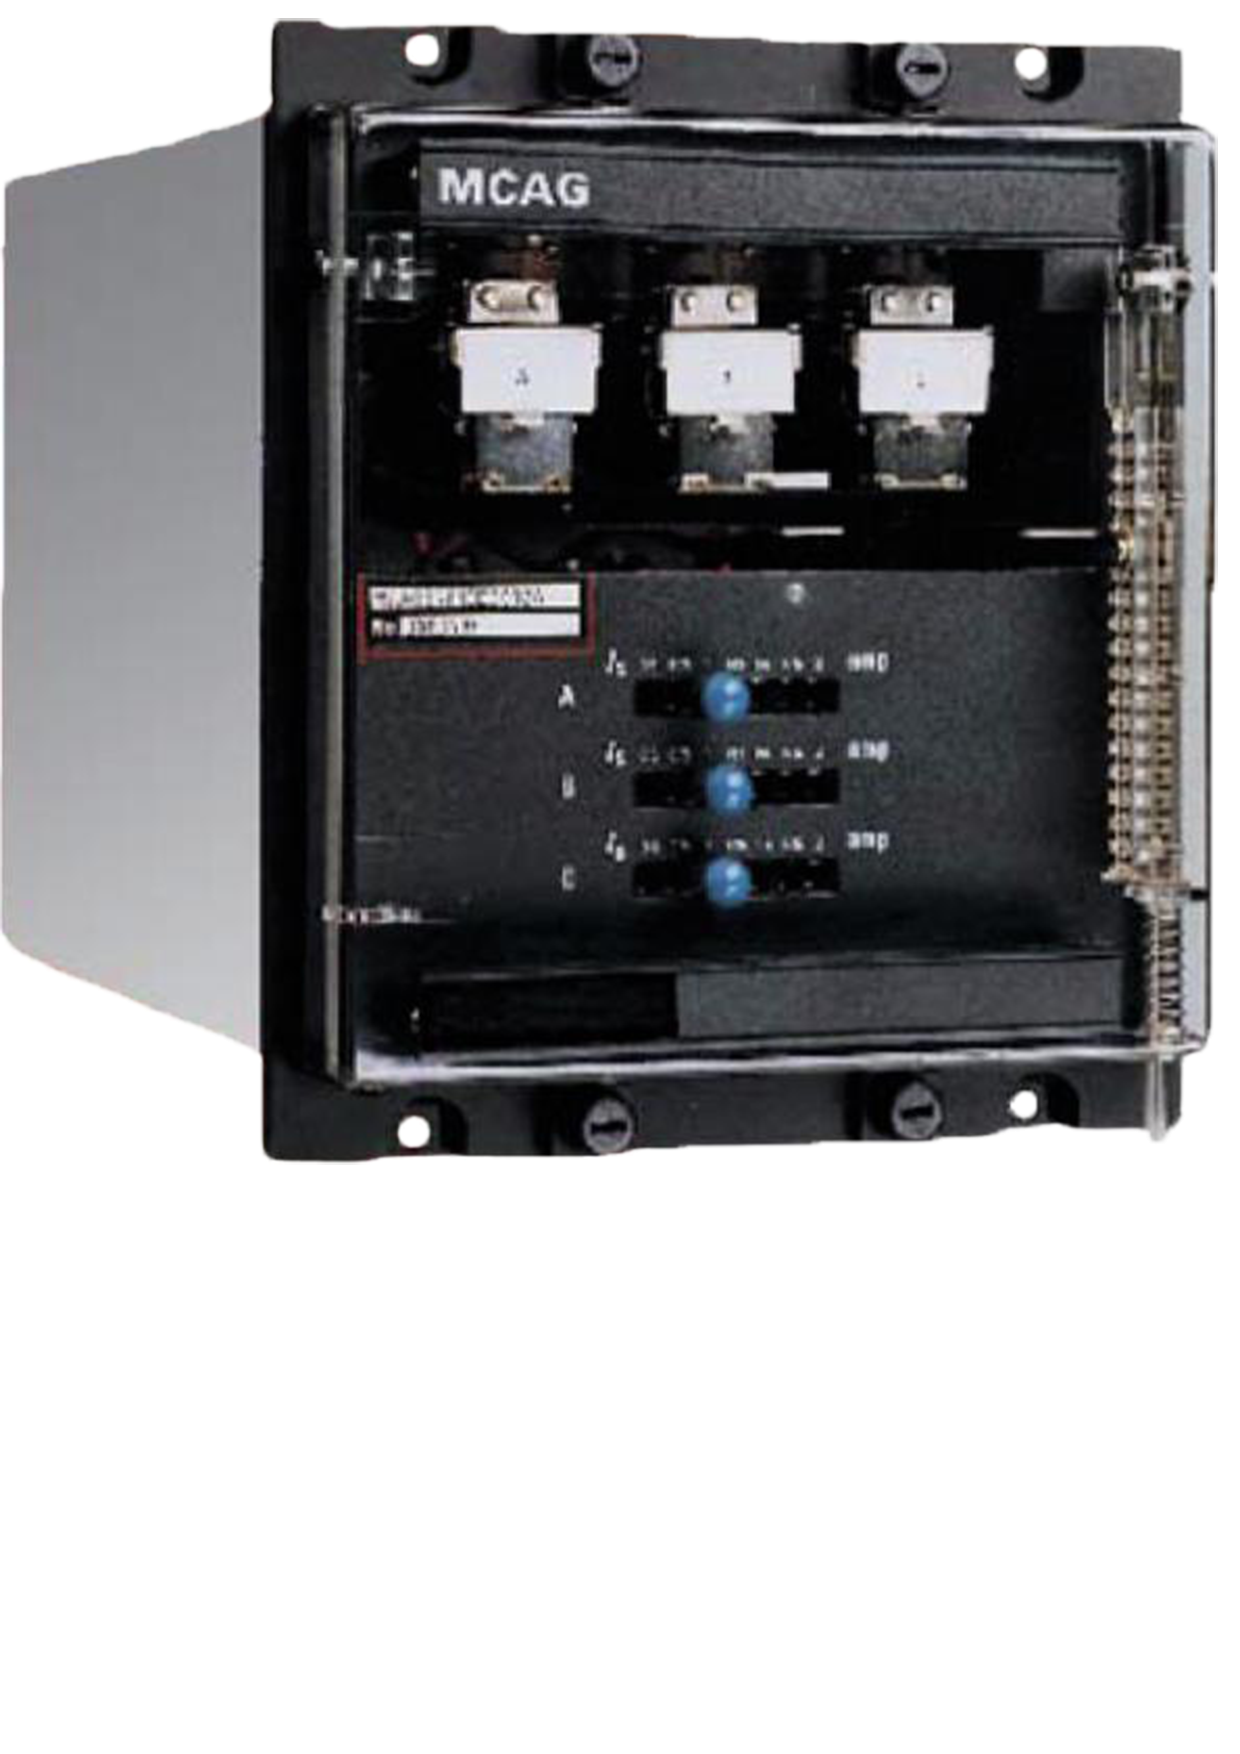 Protection Control Bus Ge Grid Solutions Transformer Wiring Diagram Mcag High Impedance Differential Relay Relays Provide Speed For Various Types Of Power System Plants Including